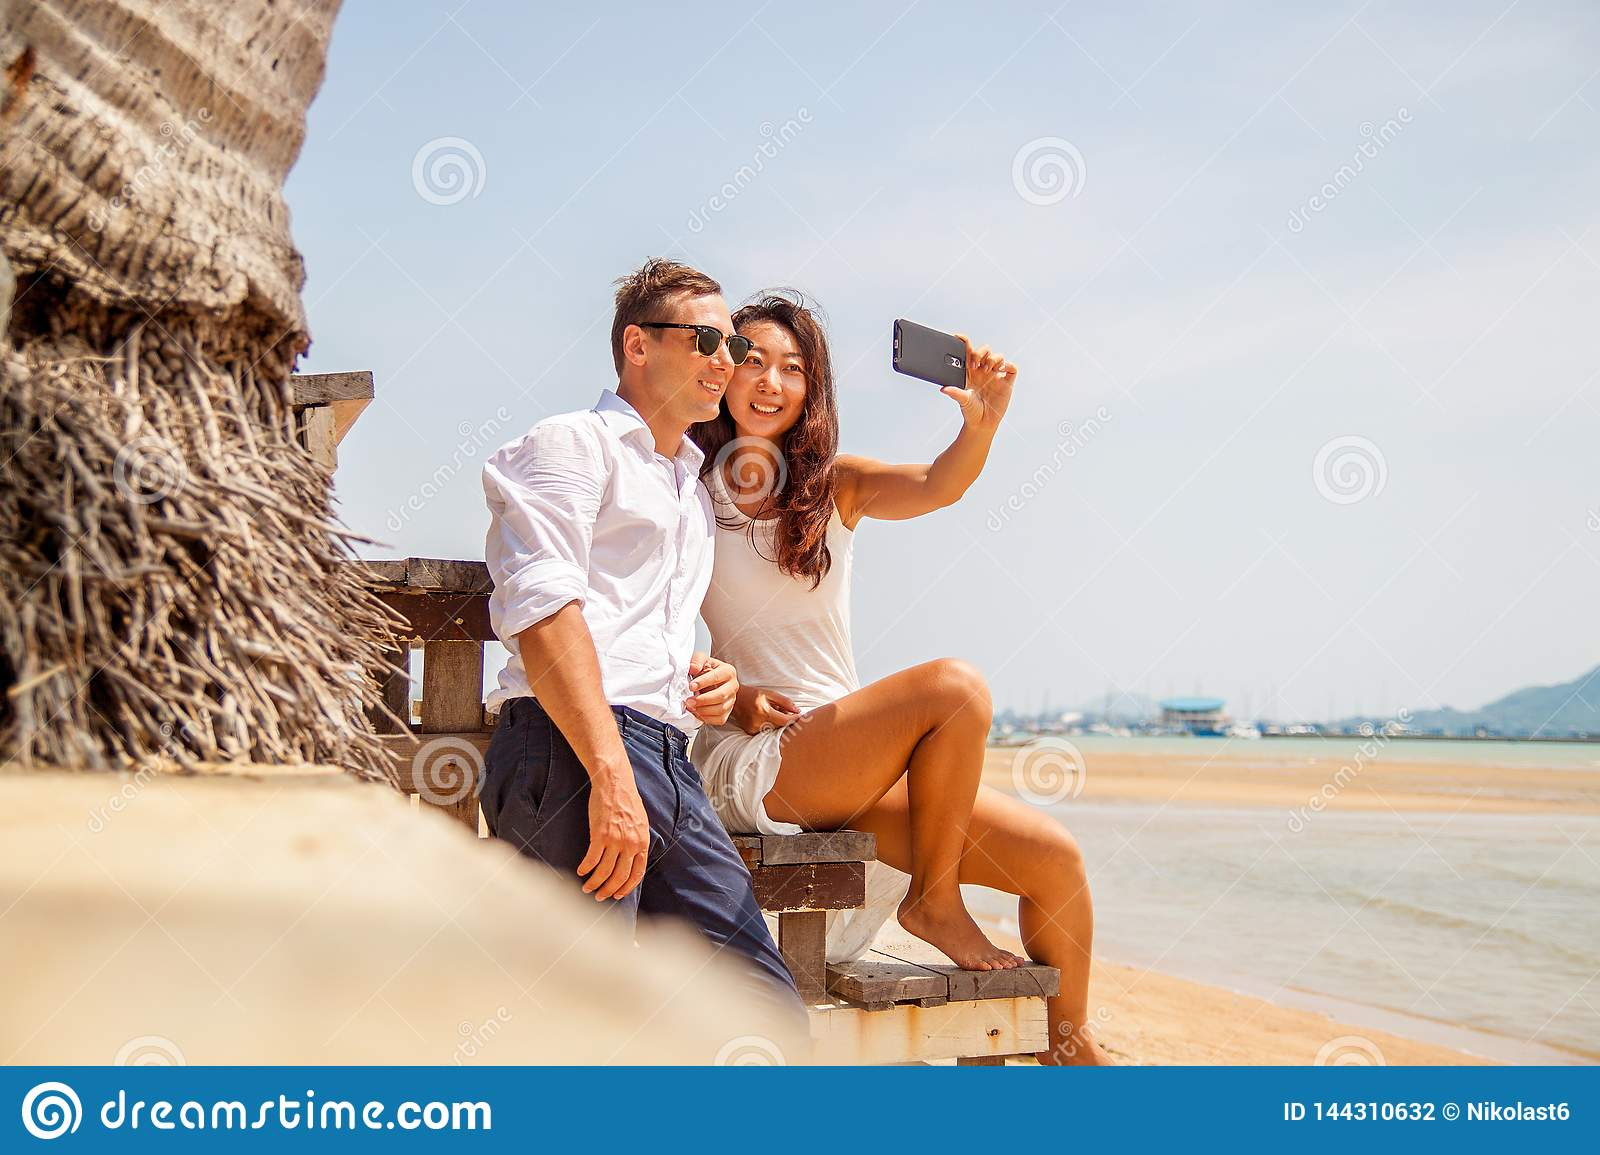 Happy couple taking a photo on white beach on honeymoon holiday.